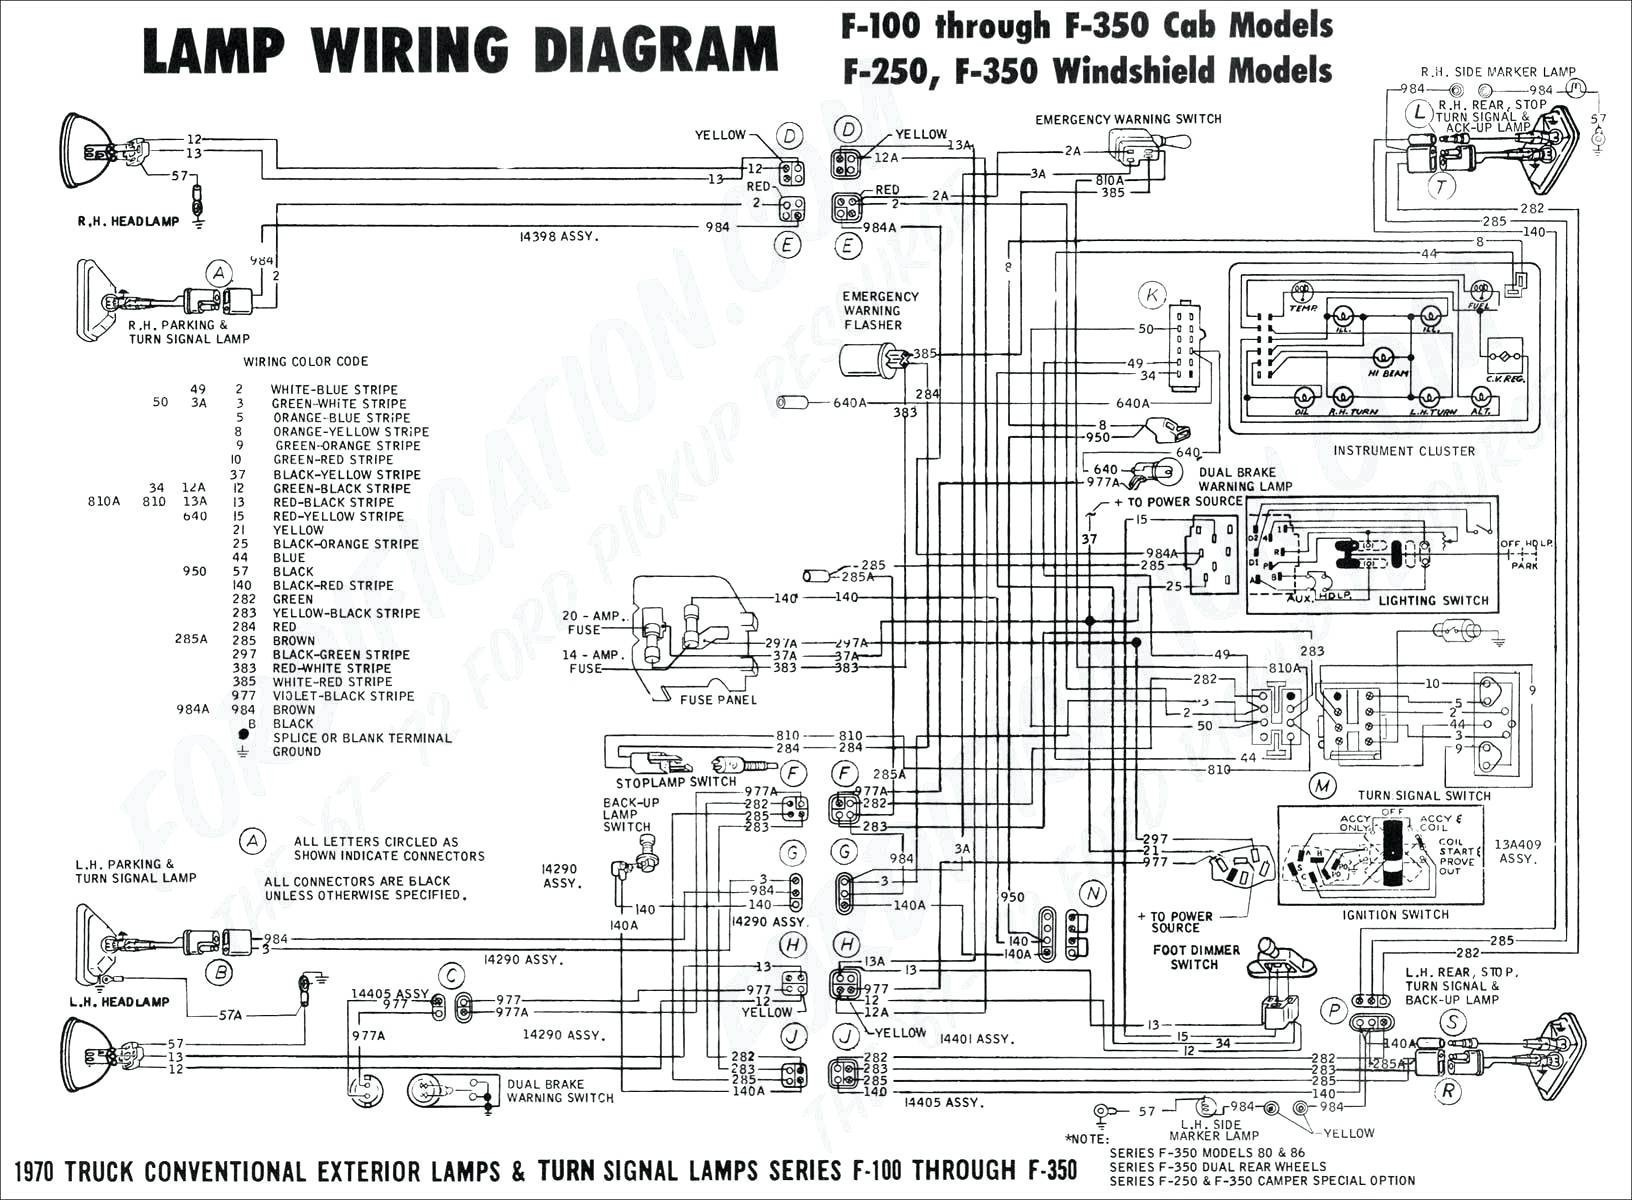 Leviton 3 Way Dimmer Switch Wiring Diagram Inspirational 86 Vanagon Wiring  Dimmer Switch Circuit Diagram Symbols